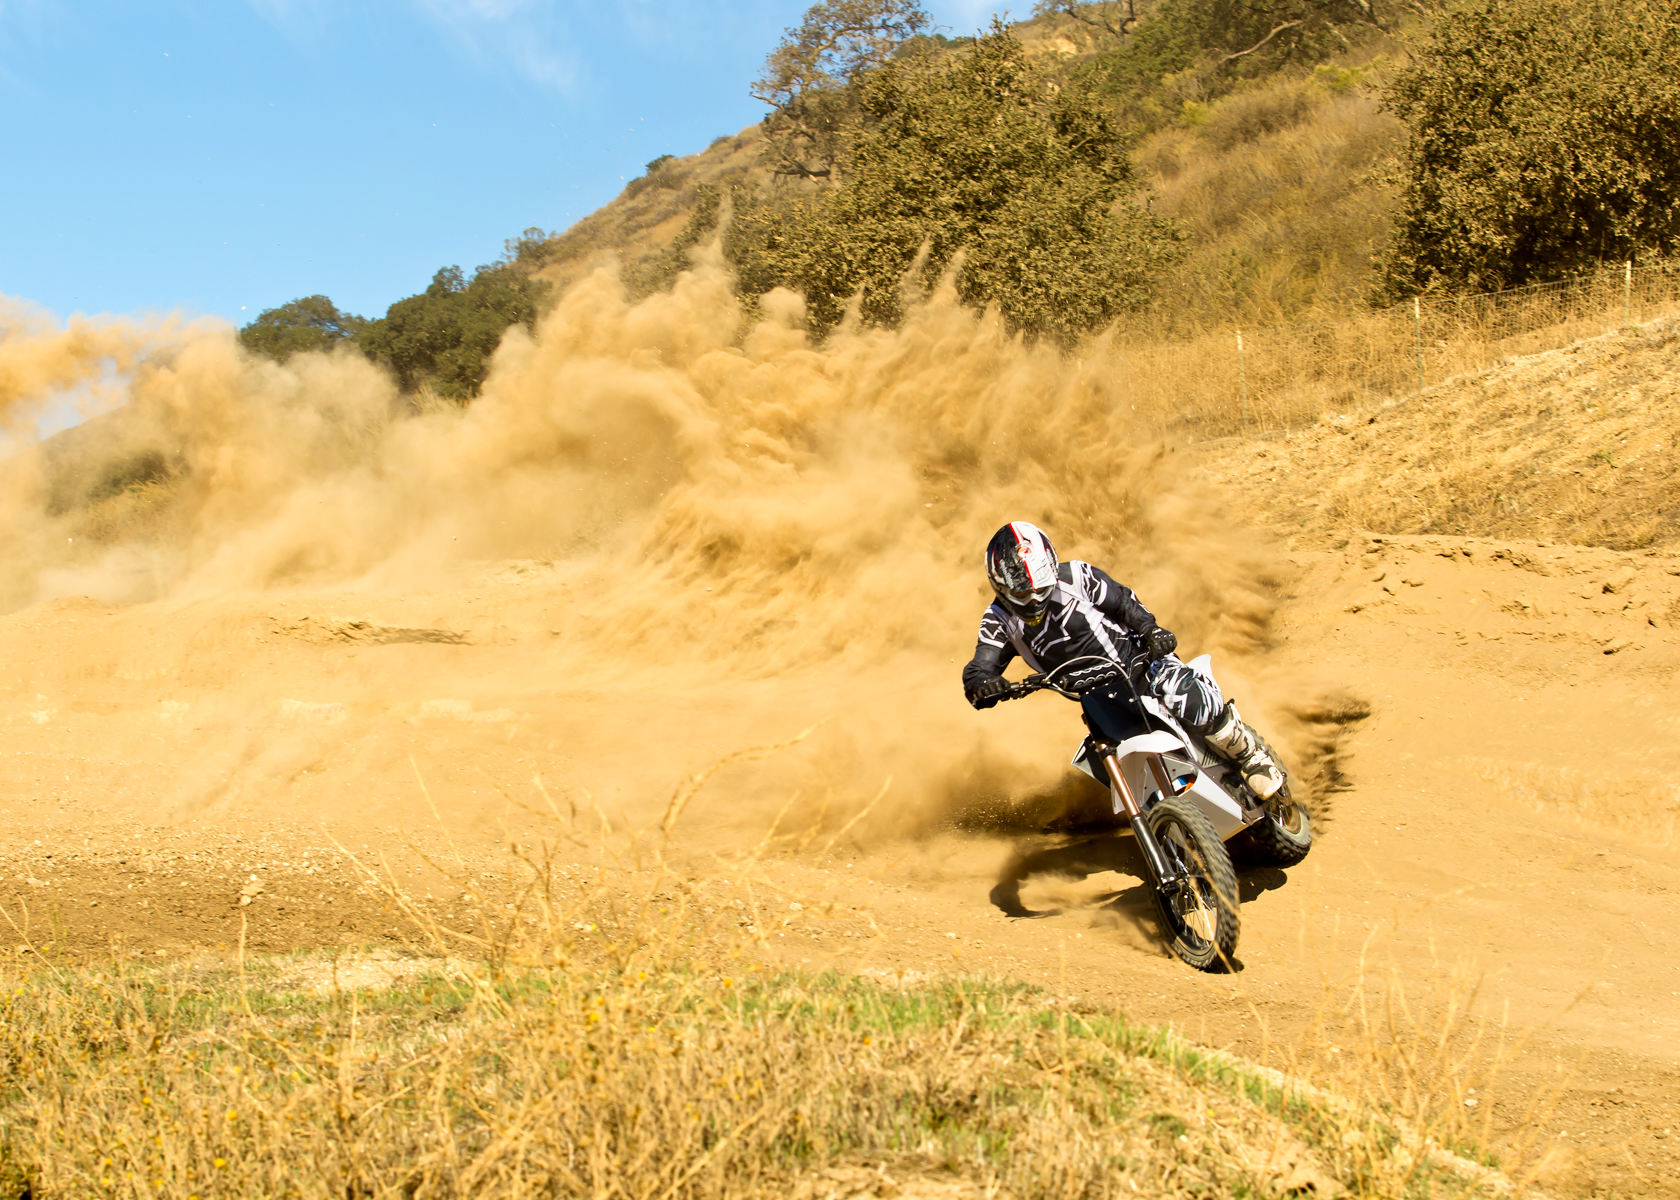 2012 Zero MX Electric Motorcycle: On a Dirt Road